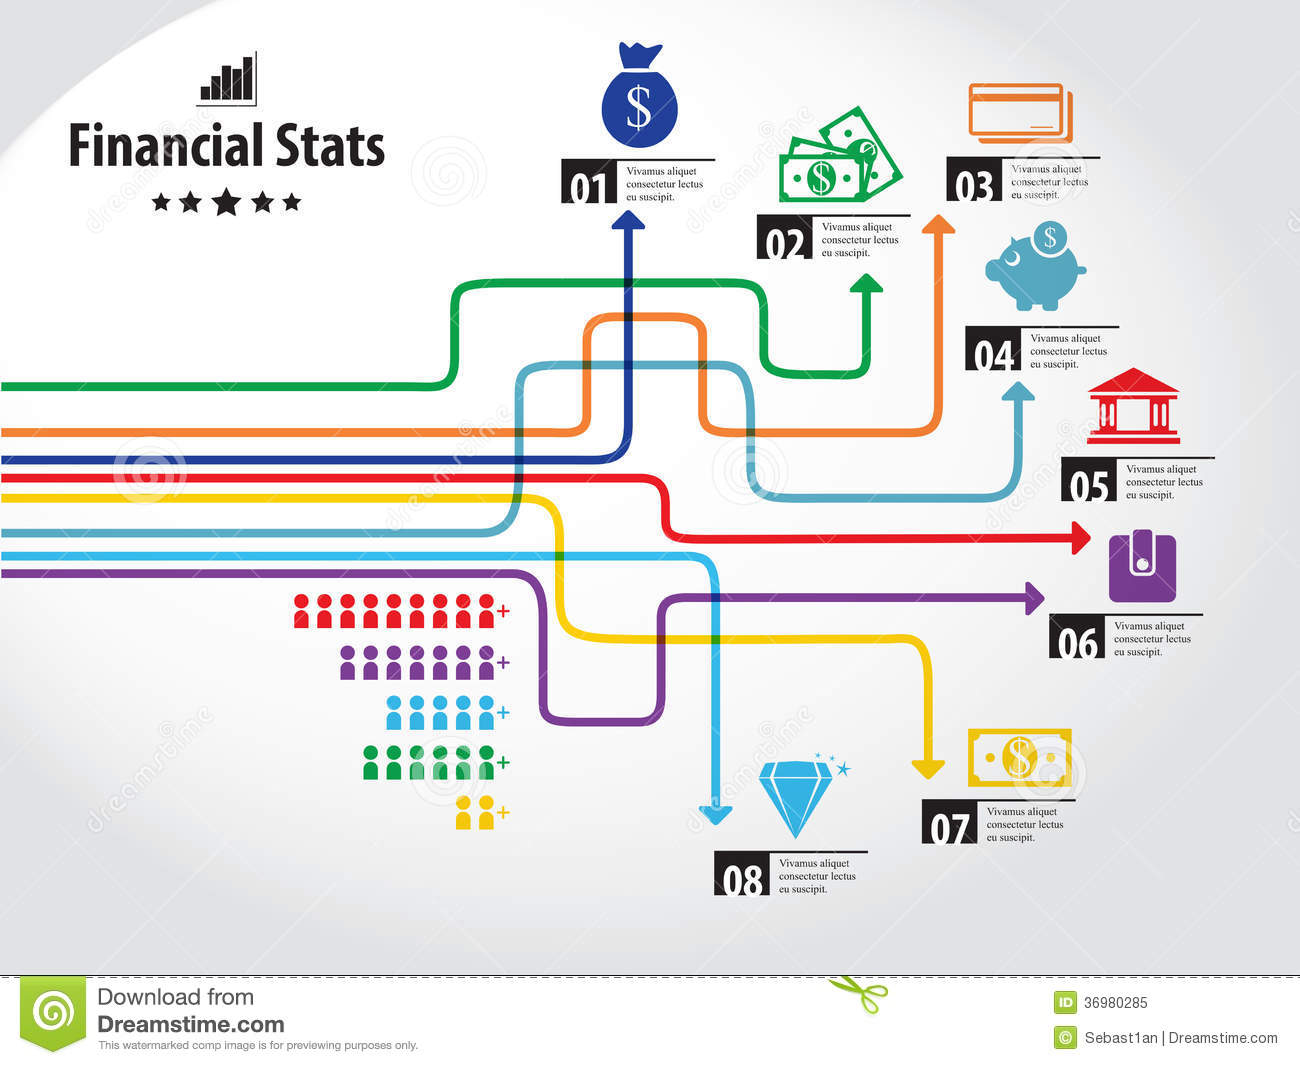 finance-graphic-trade-info-graphics-whit-info-charts-other-business-icons-design-elements-36980285.jpg